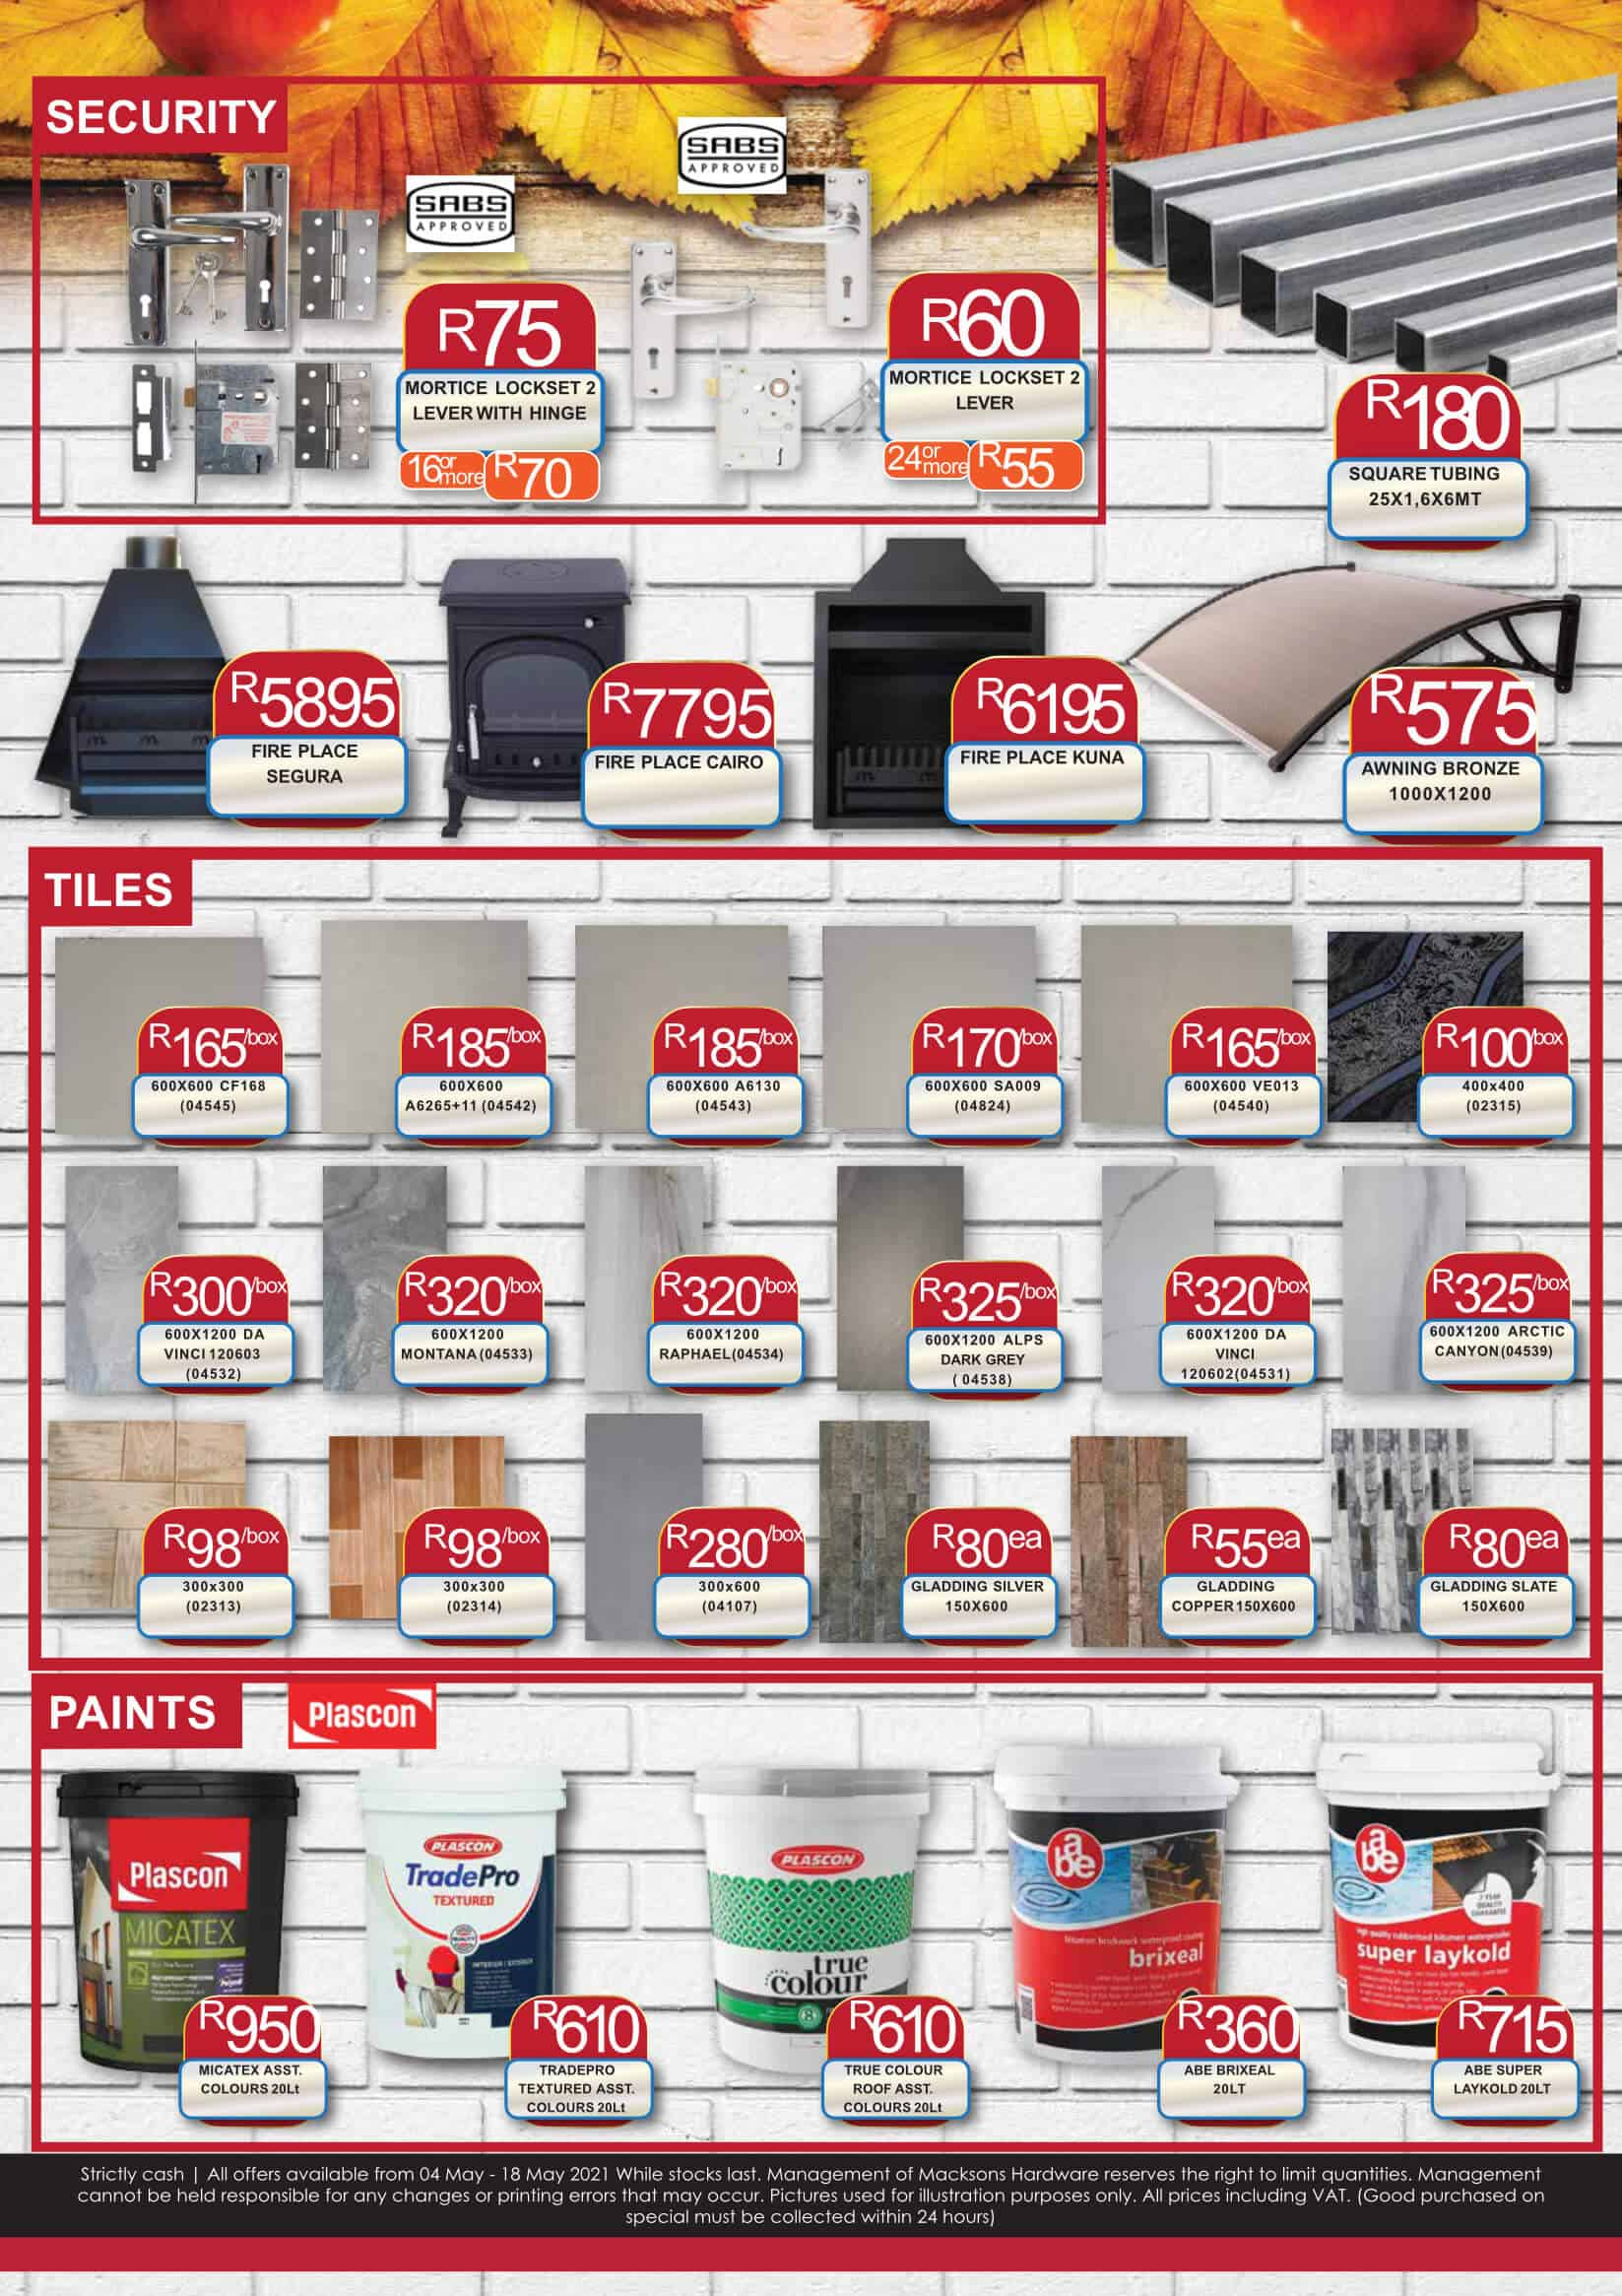 Macksons Hardware Special Page 2 May 2021